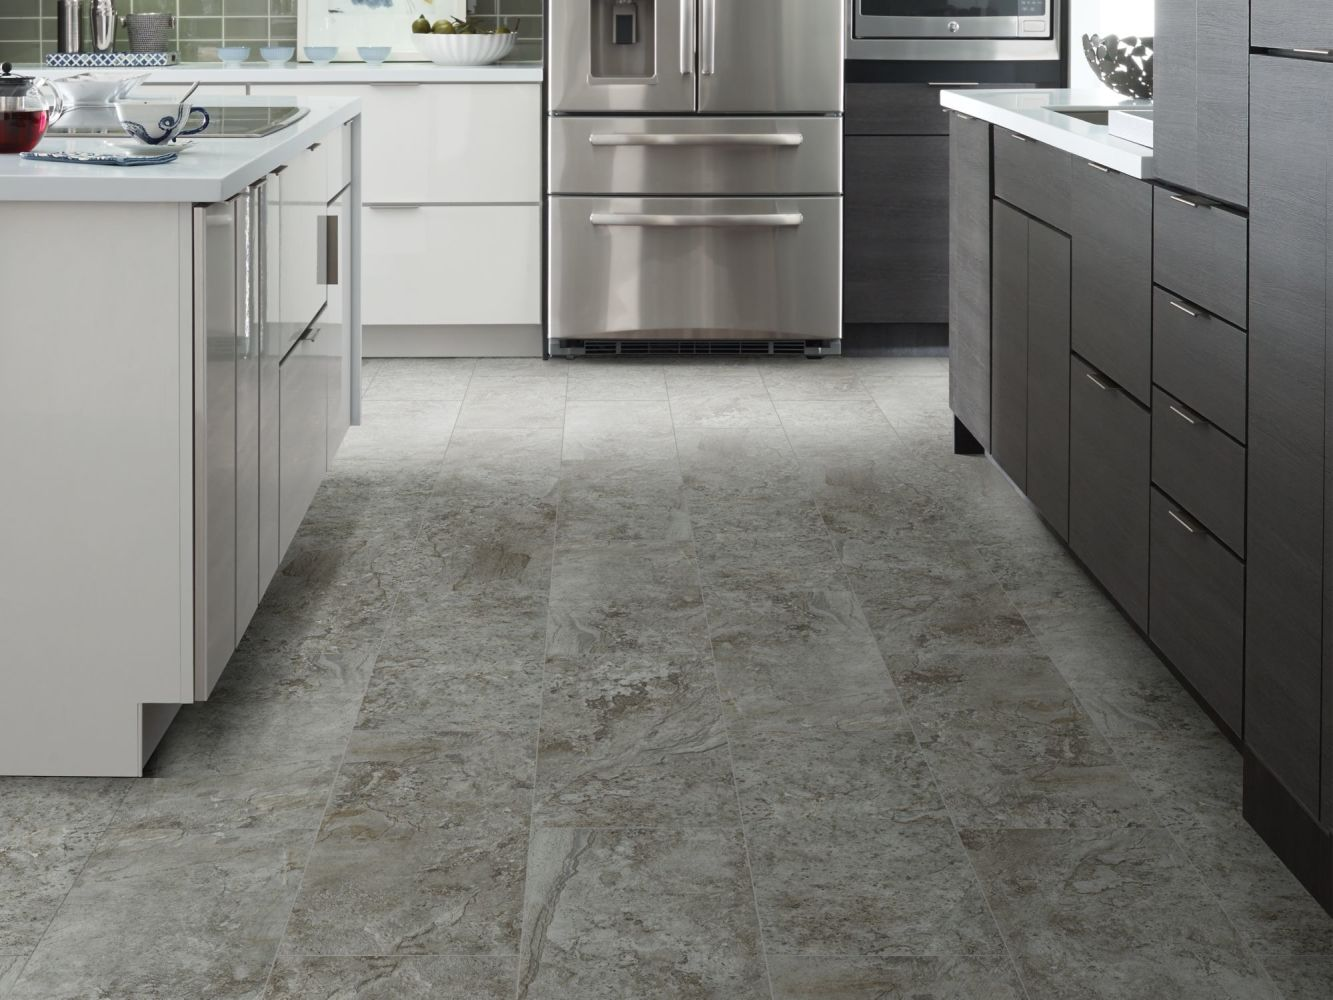 Shaw Floors Clayton Homes Blinde Creek Slate 05063_C171Y